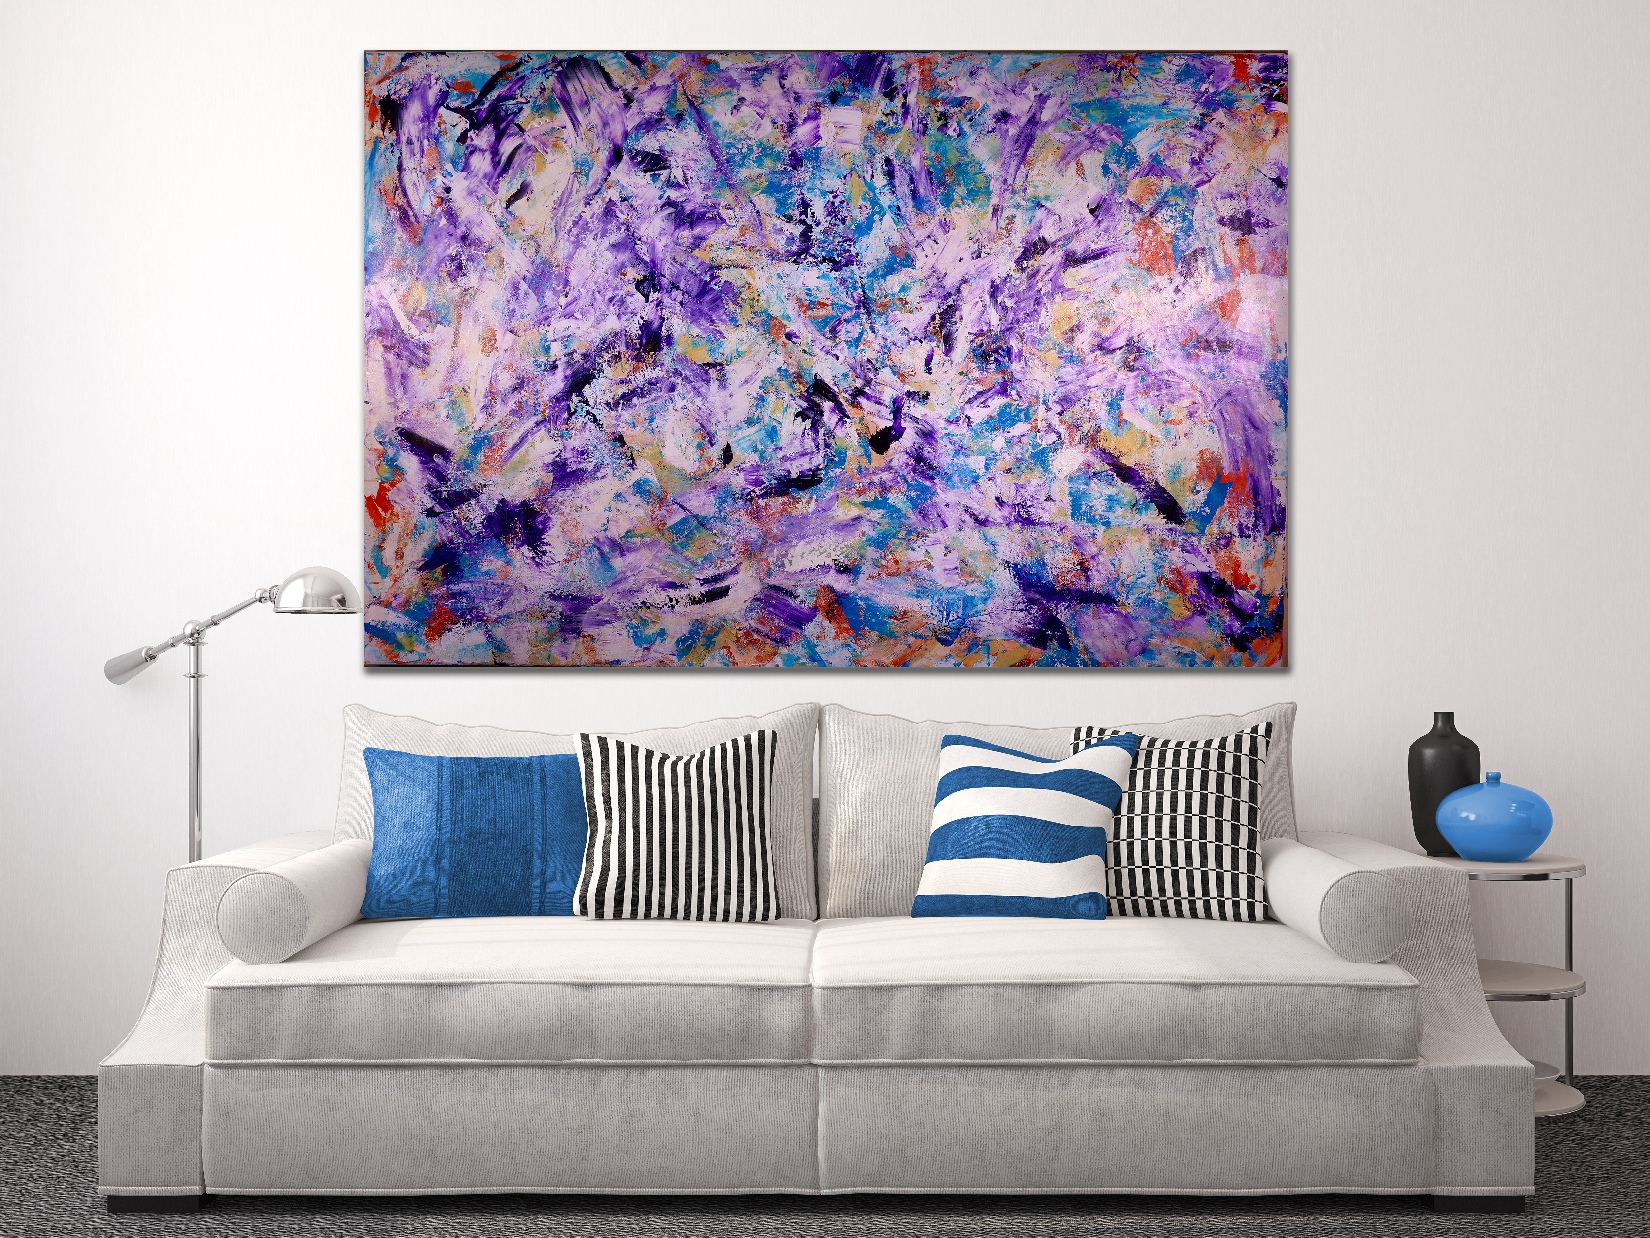 Iridescent Purple (Echoes) - SOLD